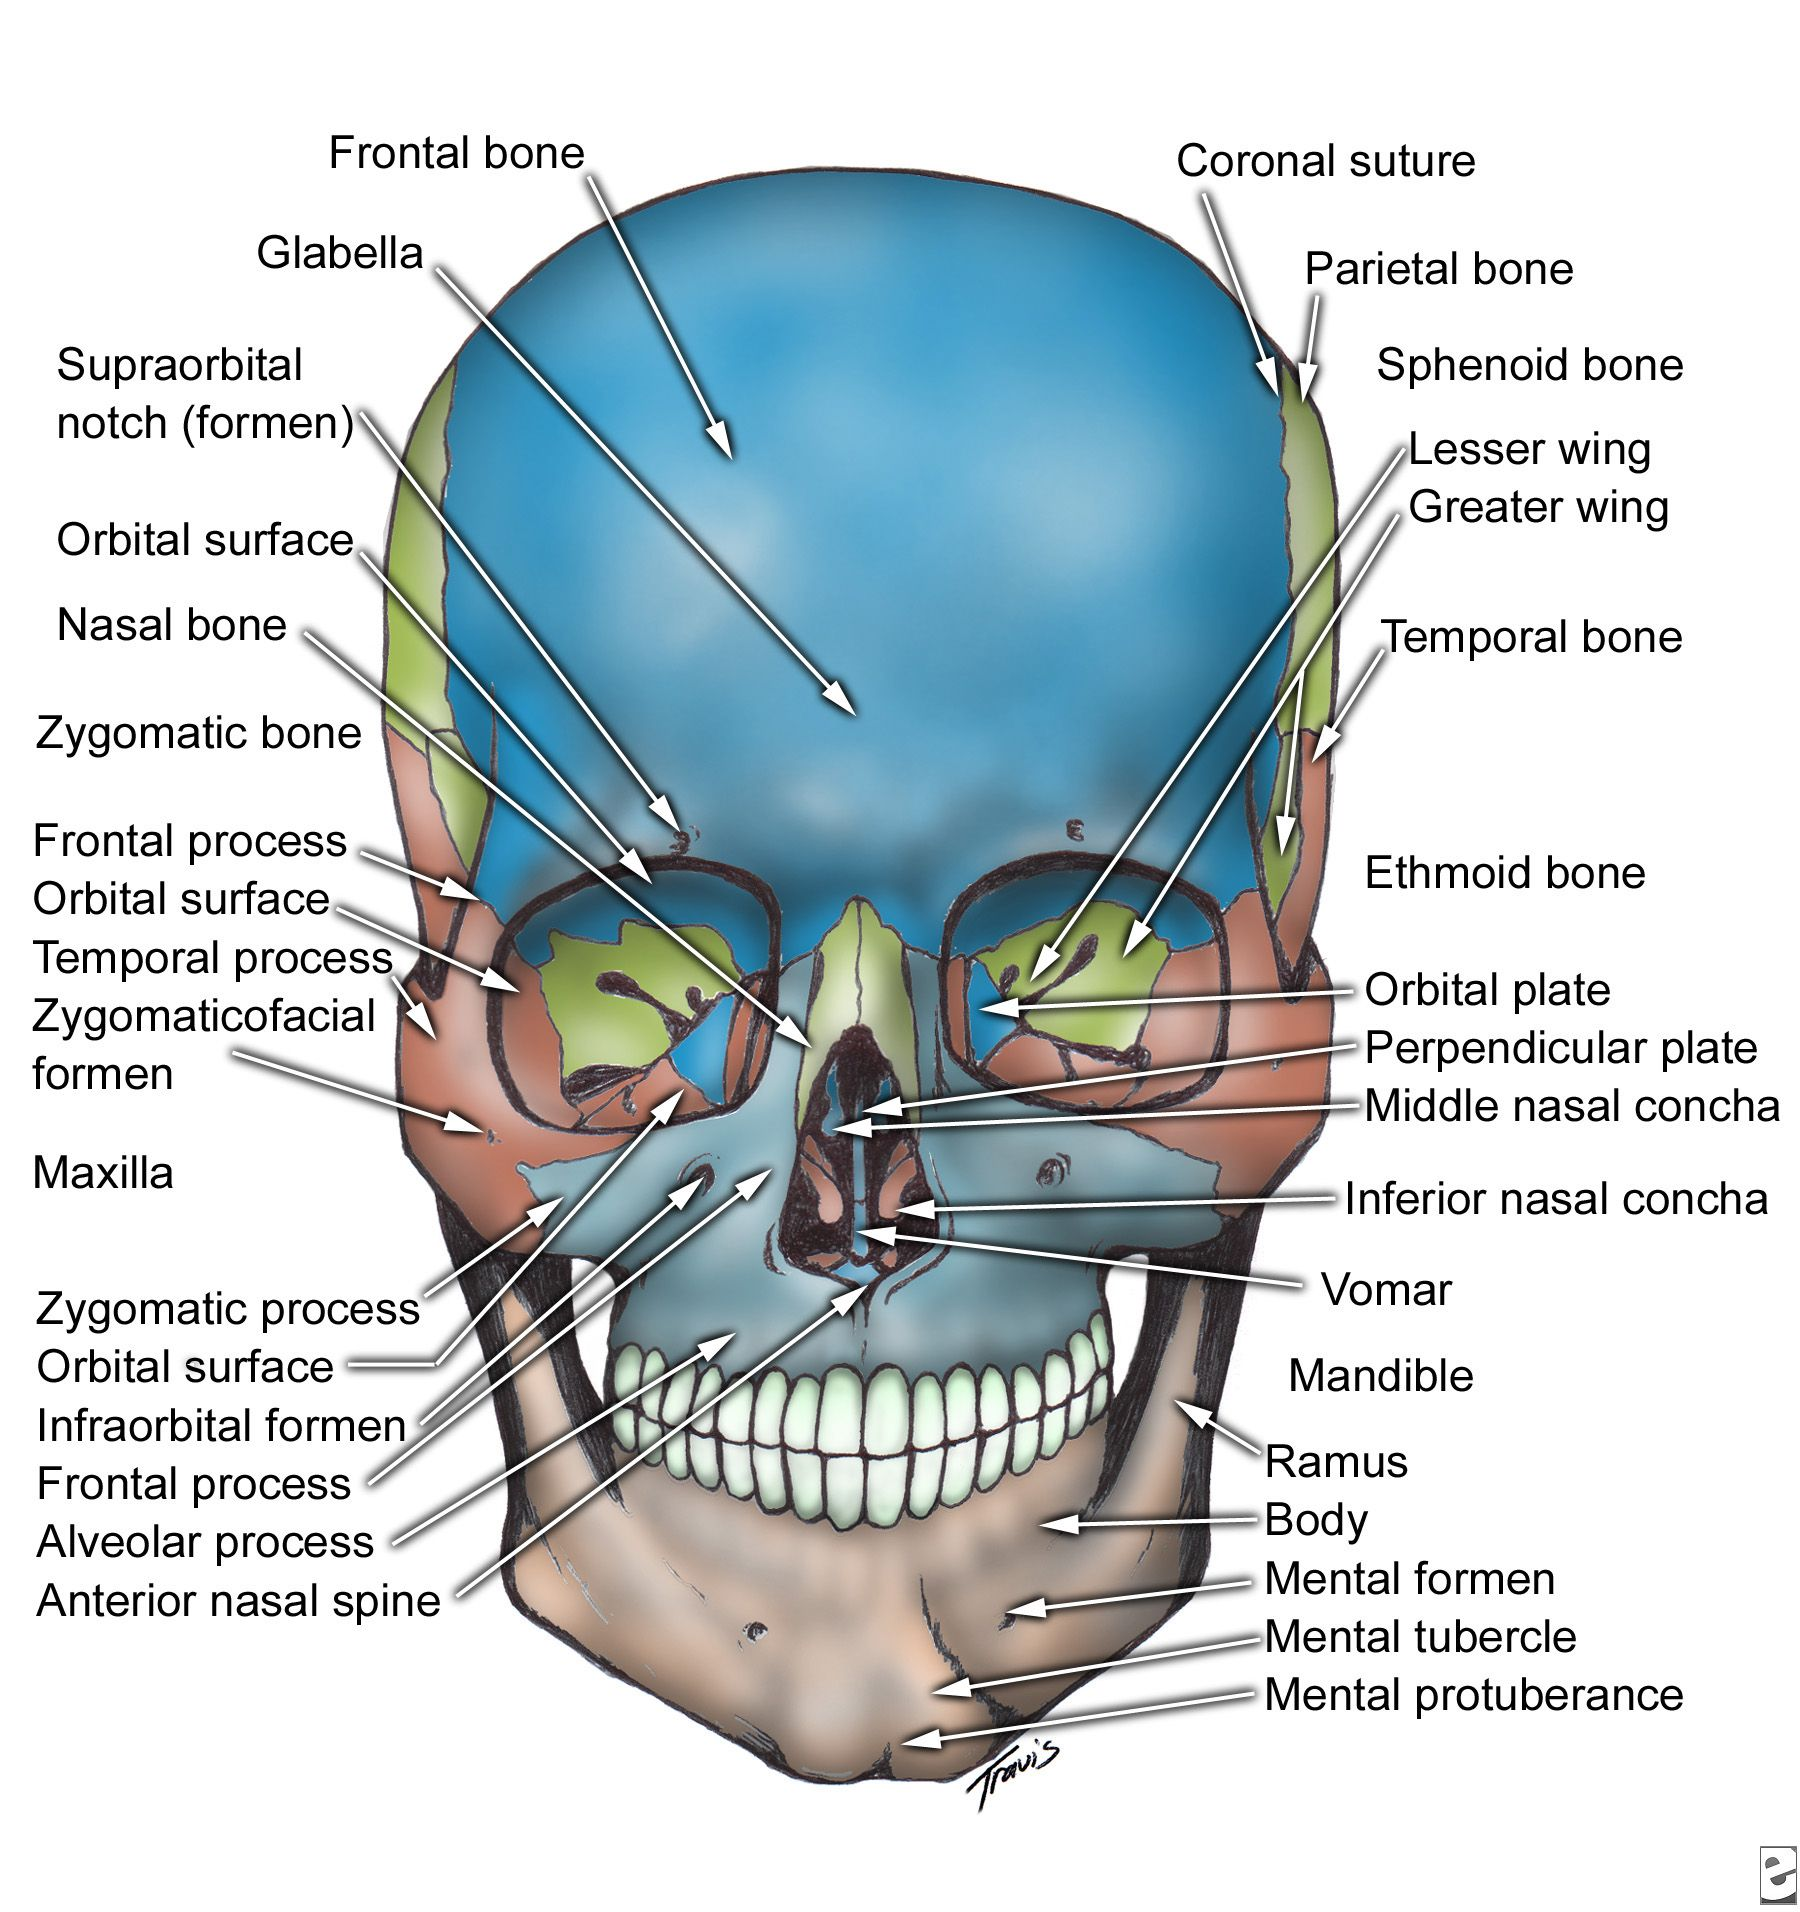 Skeleton of the face | Pinterest | Facial bones, Facial and Anatomy